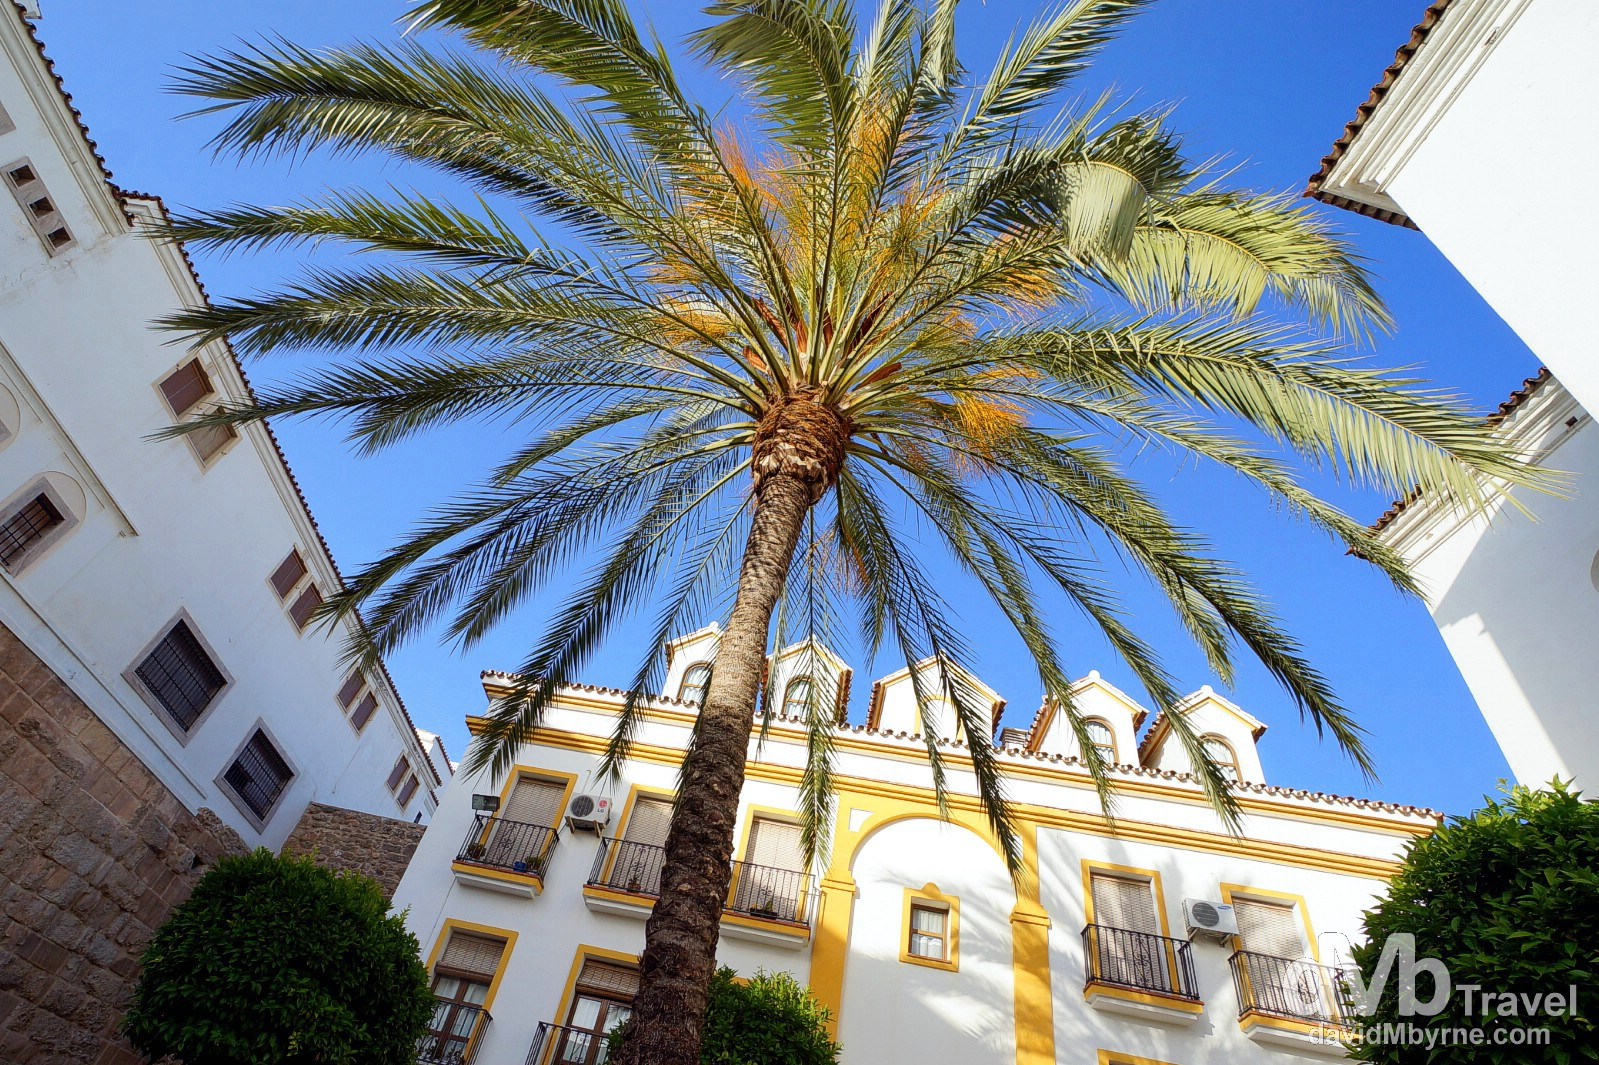 A palm tree in Plaza de los Naranjos, Marbella, Andalusia, Spain. June 6th, 2014.